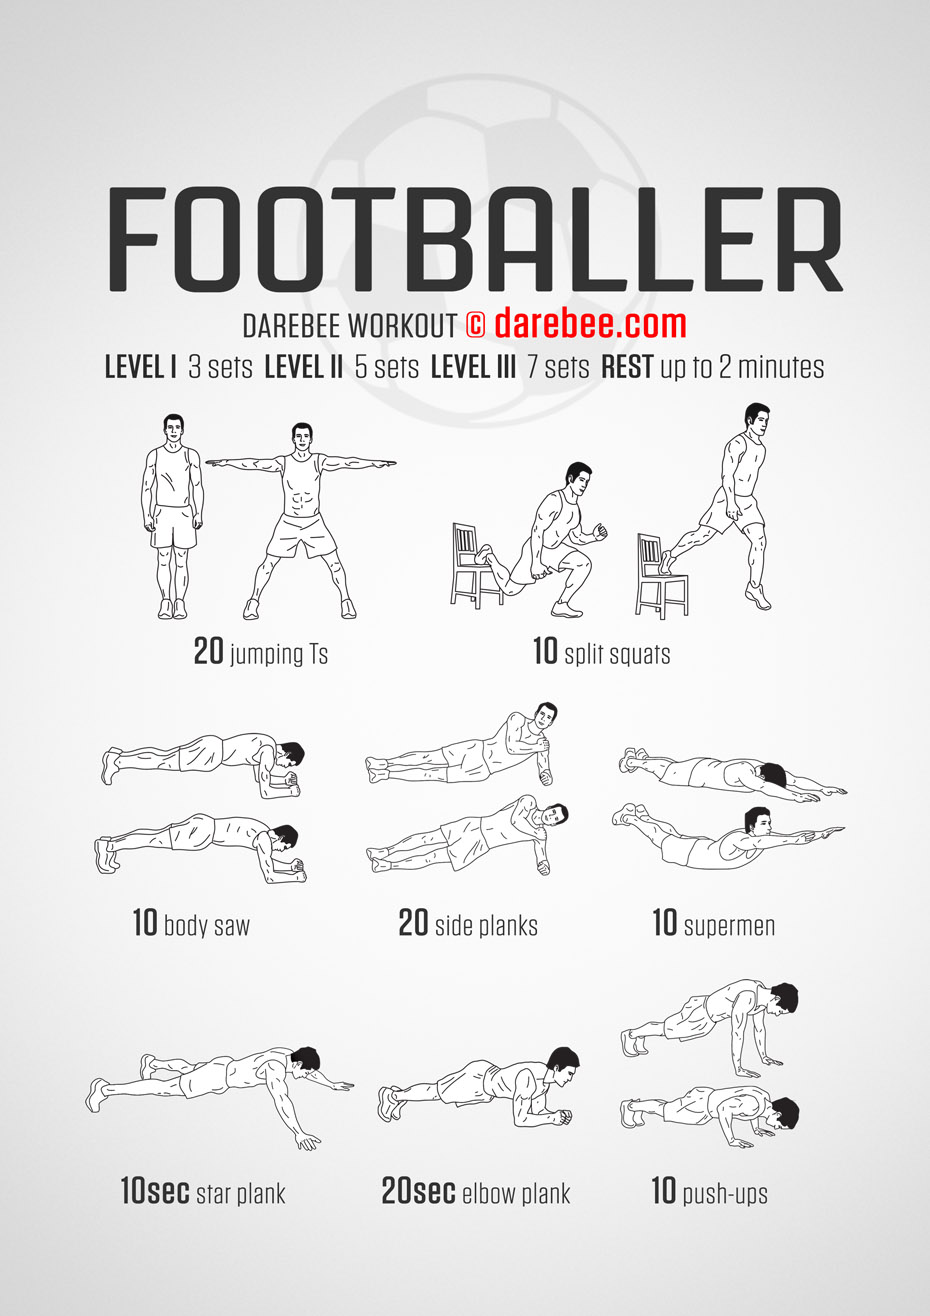 Gym workout routines for soccer players